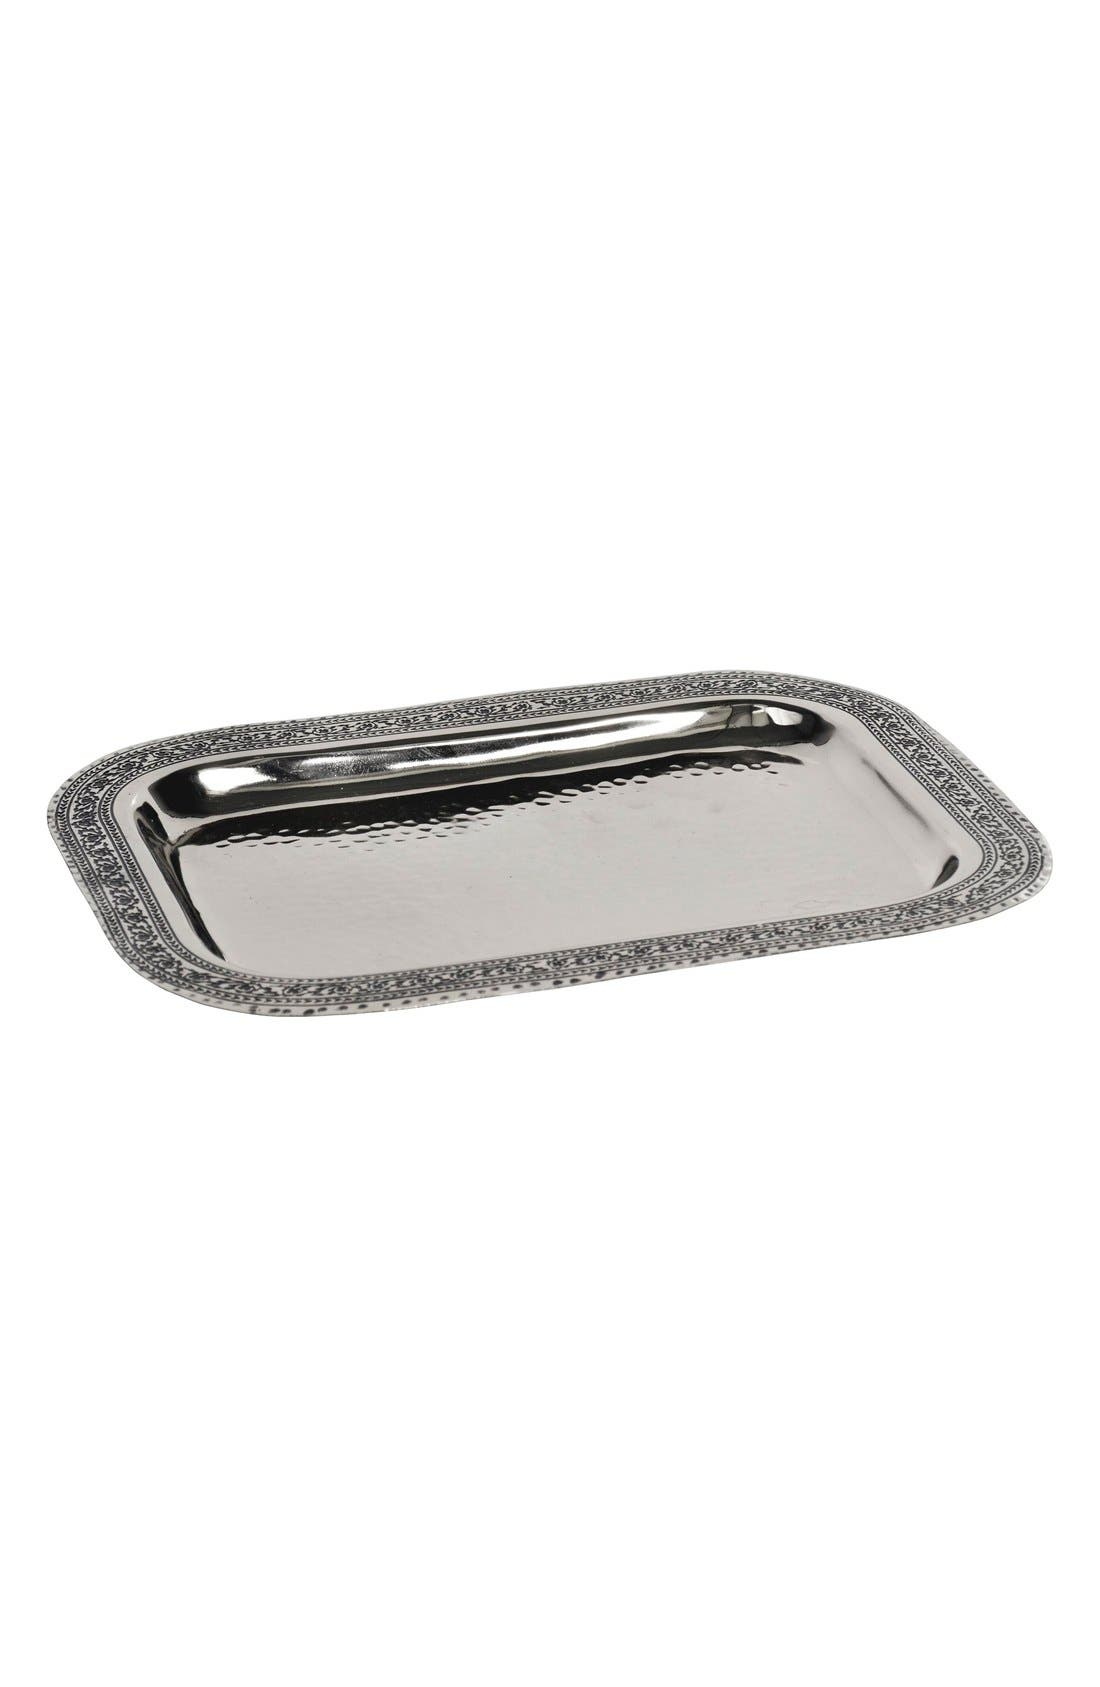 'Taxila' Tray,                             Main thumbnail 1, color,                             Silver